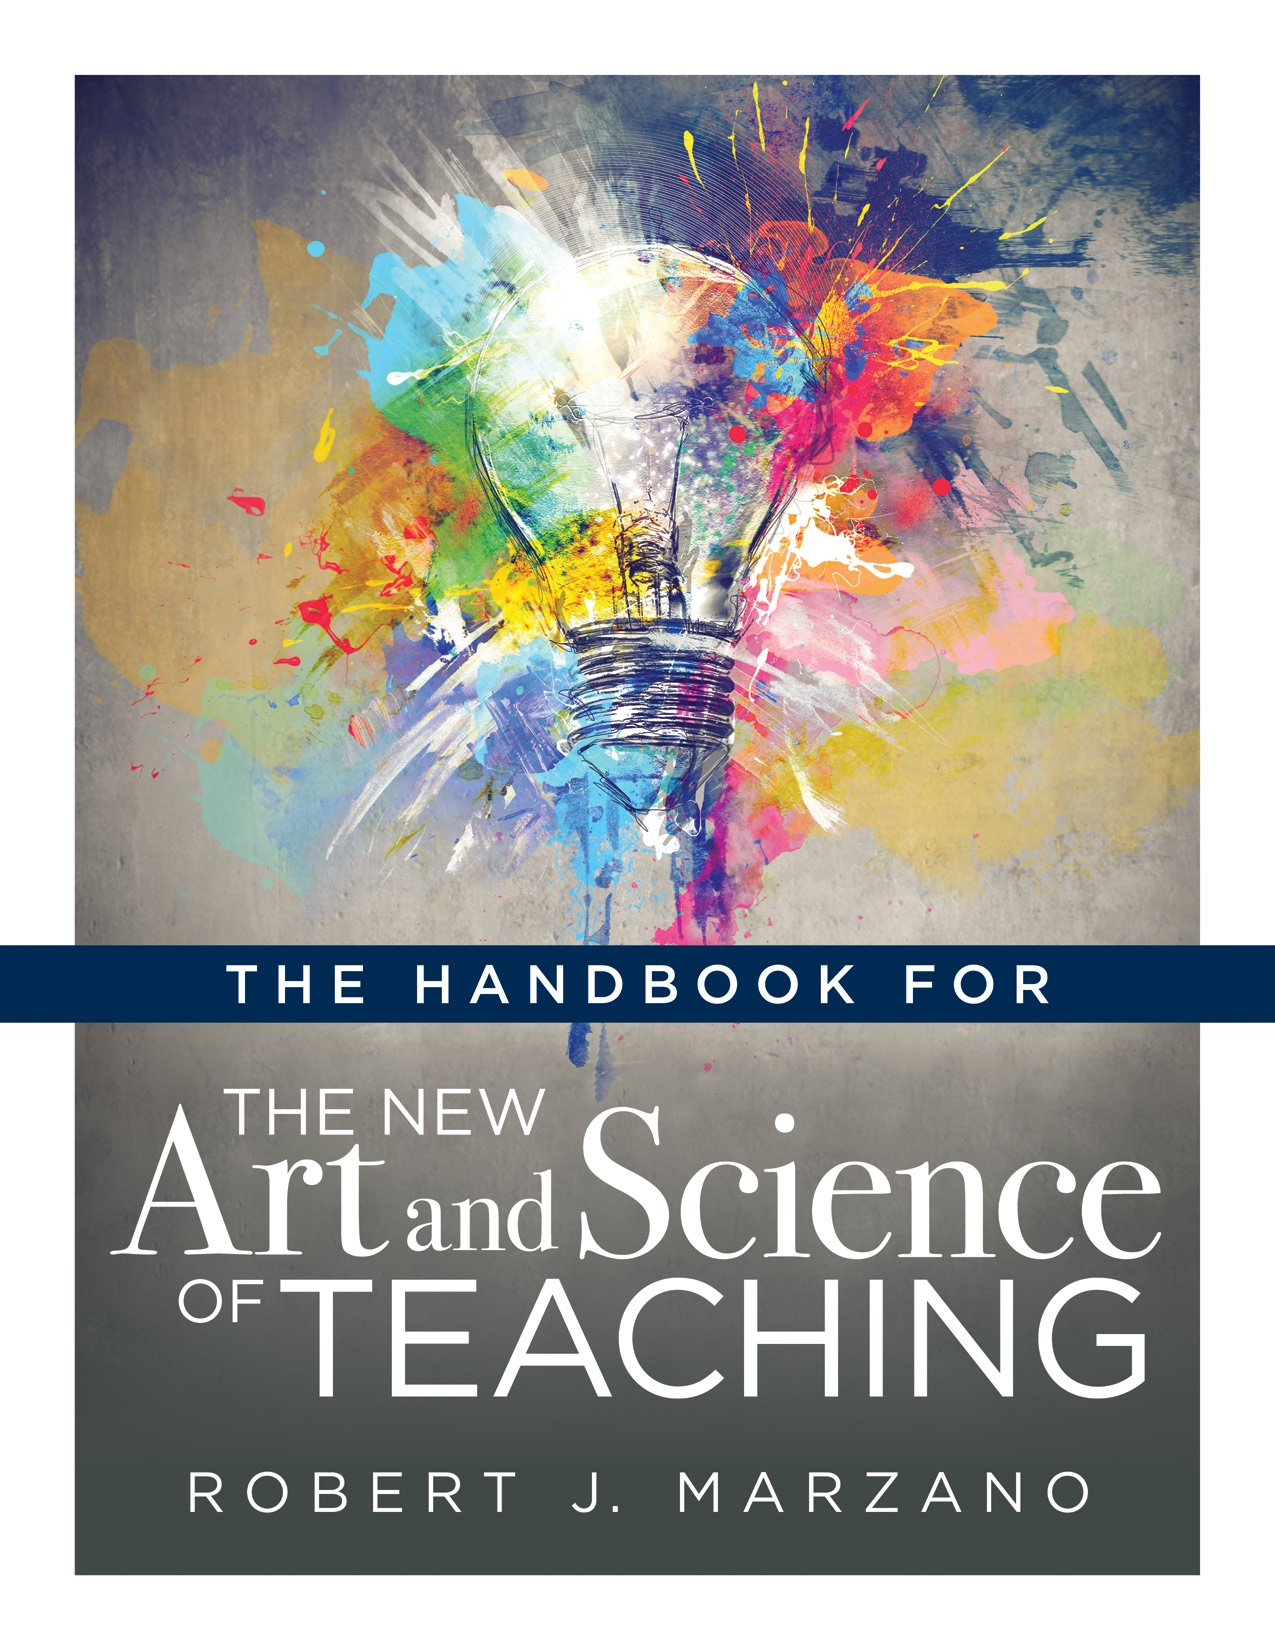 Marzano Research Handbook For The New Art And Science Of Teaching